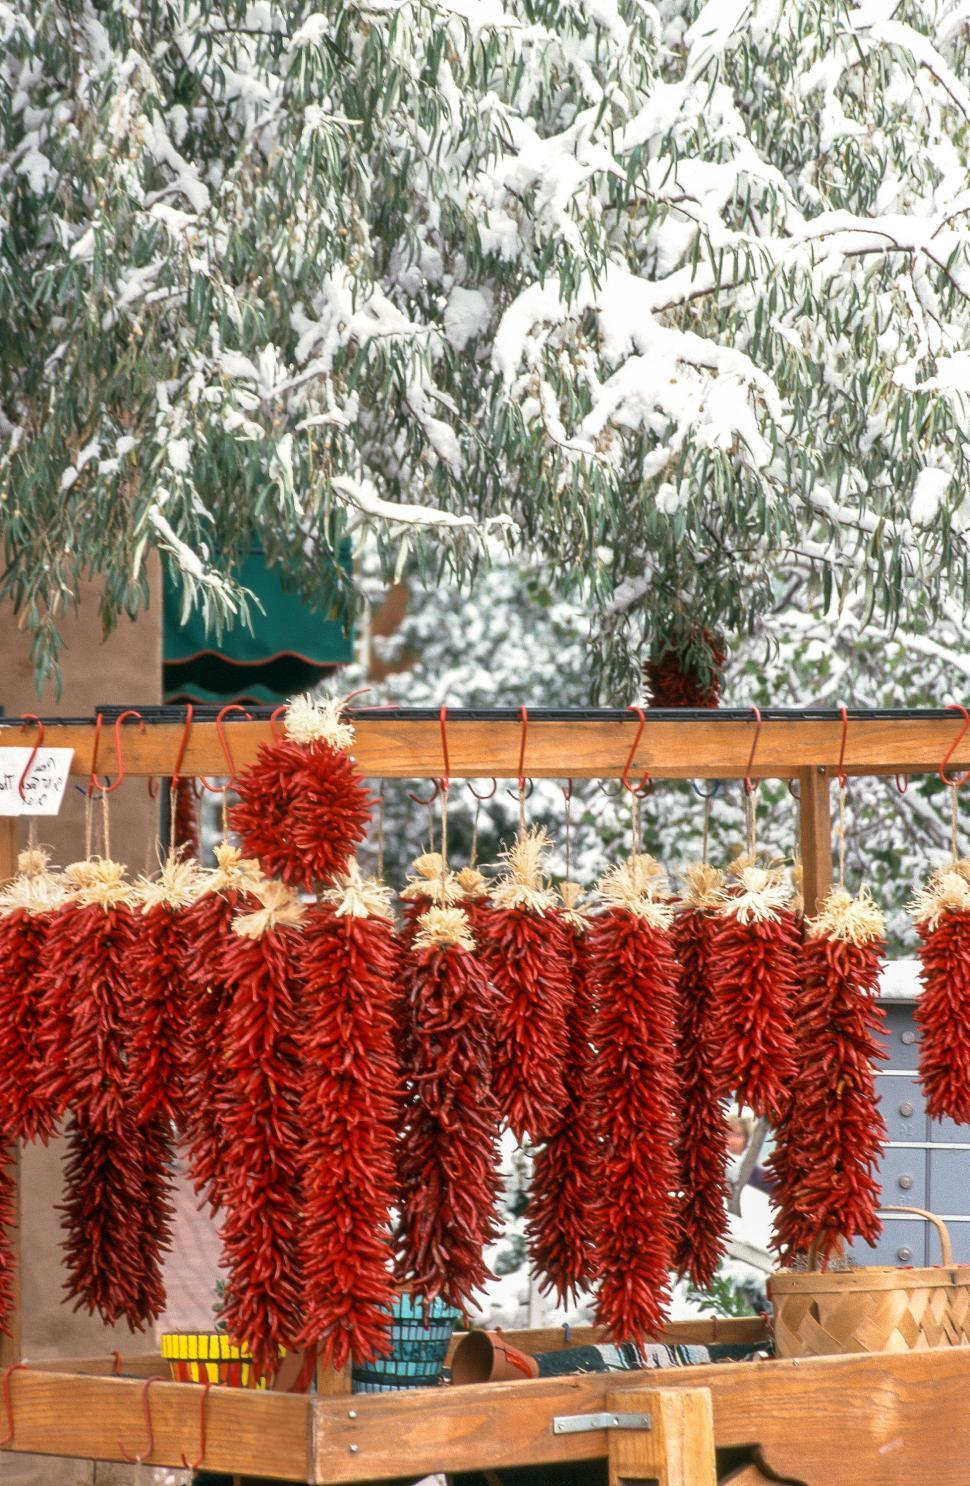 Download Free Stock Photo of Red chili ristras